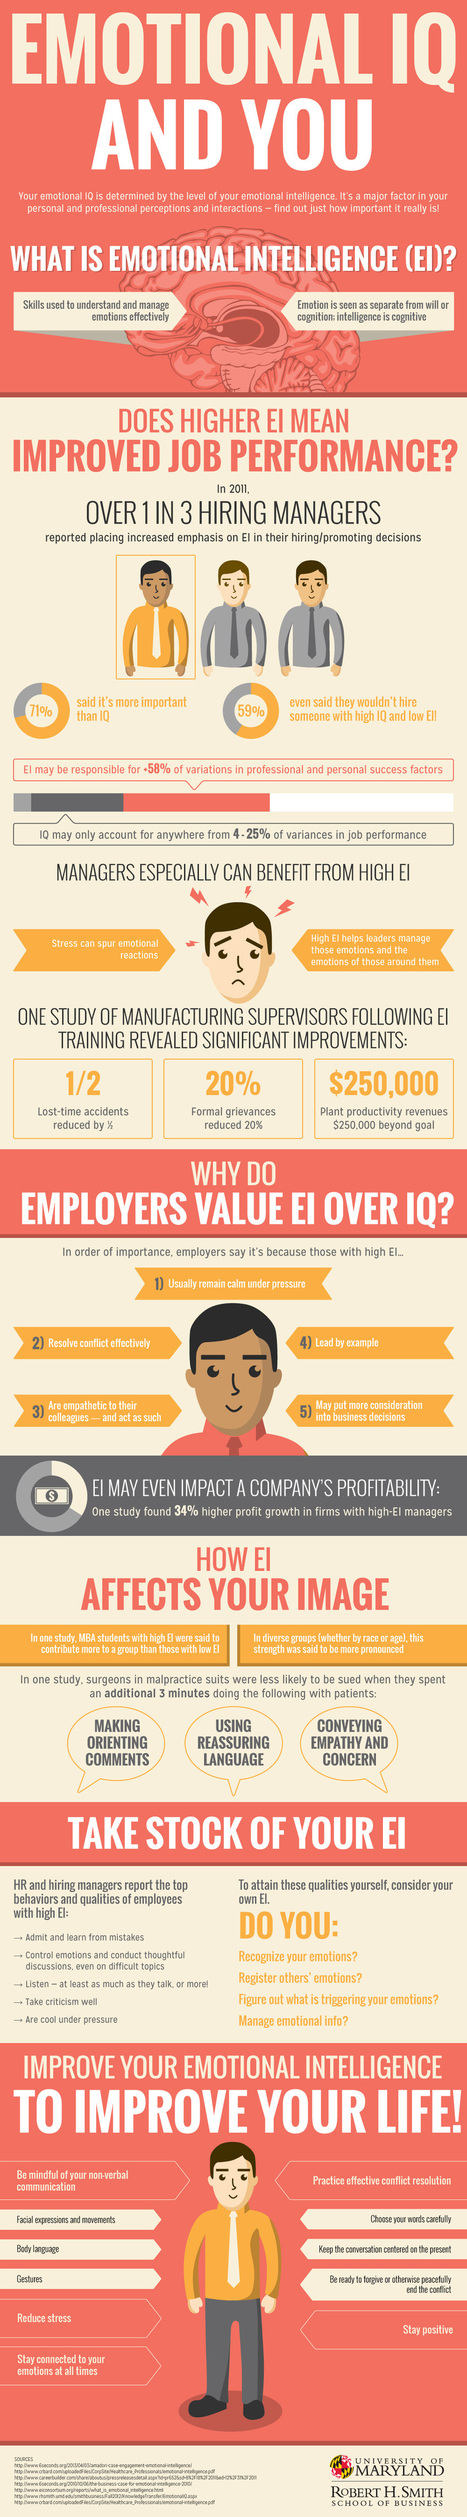 Emotional Intelligence and Your Career: EQ for Talent Infographic | Intelligence émotionnelle | Scoop.it